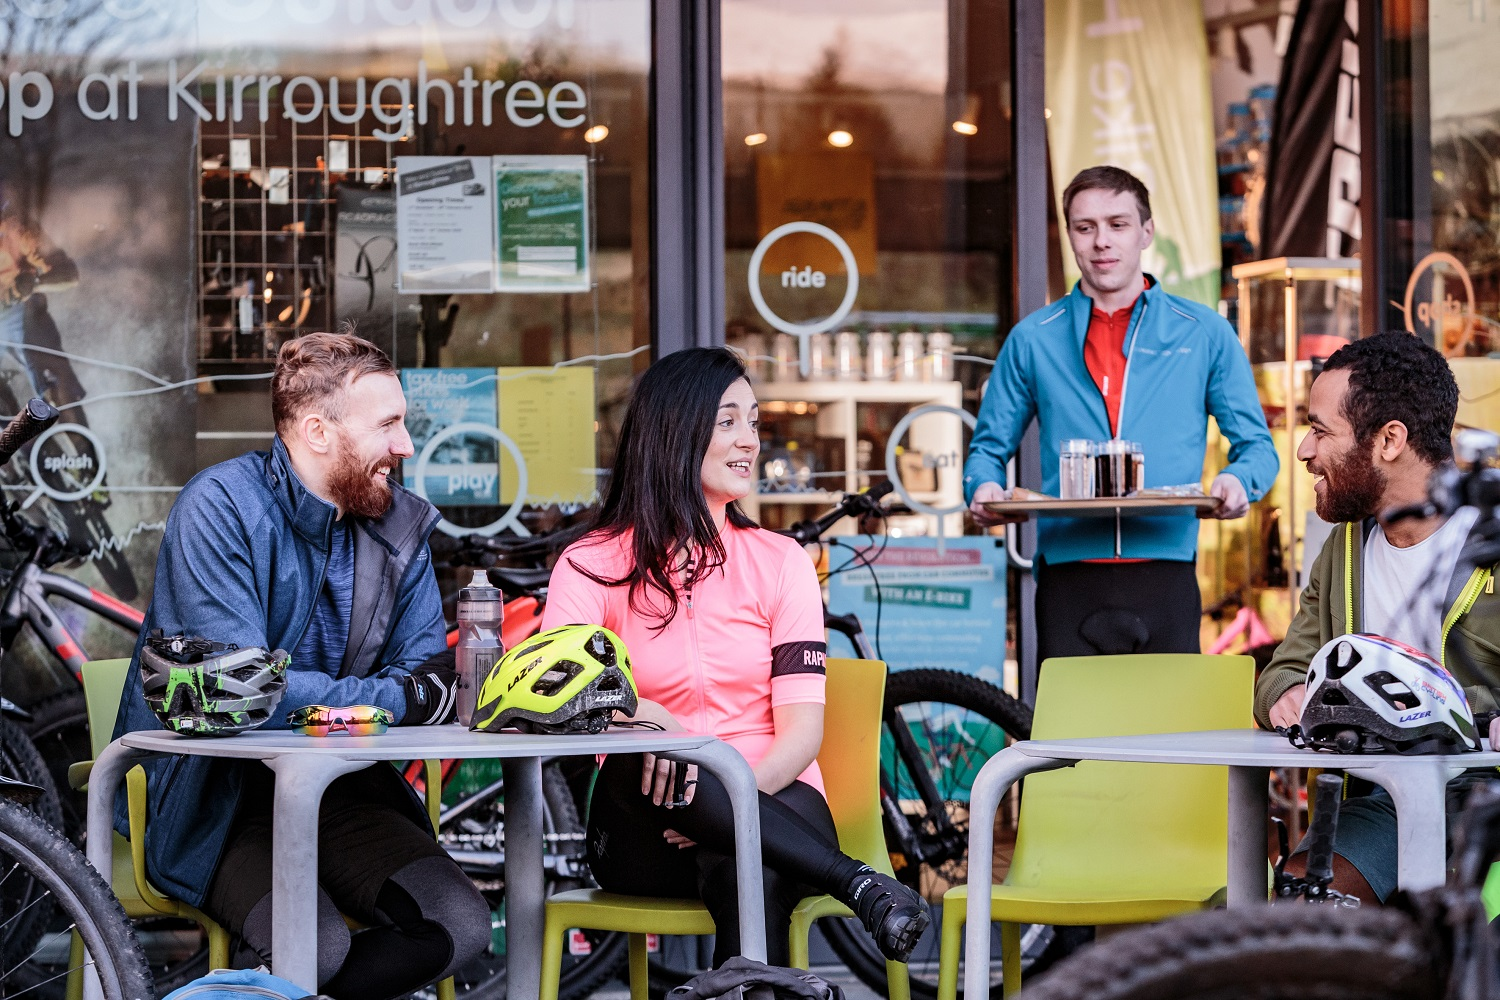 People sitting down and talking at a cafe in Kirroughtree Visitor Centre with their cycling equipment out